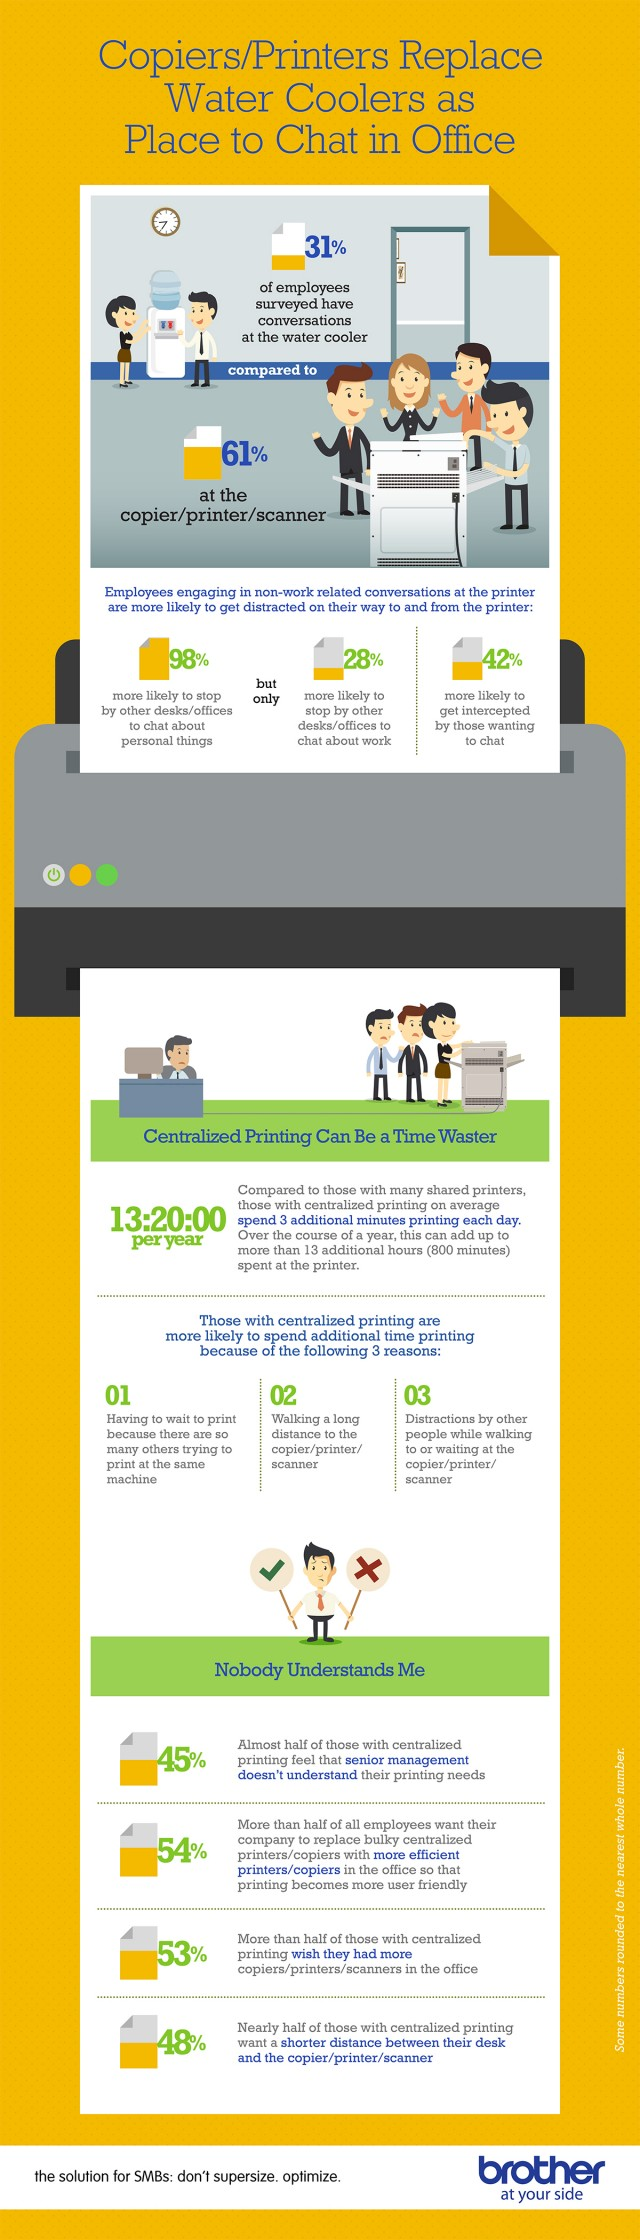 blog_printers-are-the-number-one-place-to-chat-in-your-office.jpg